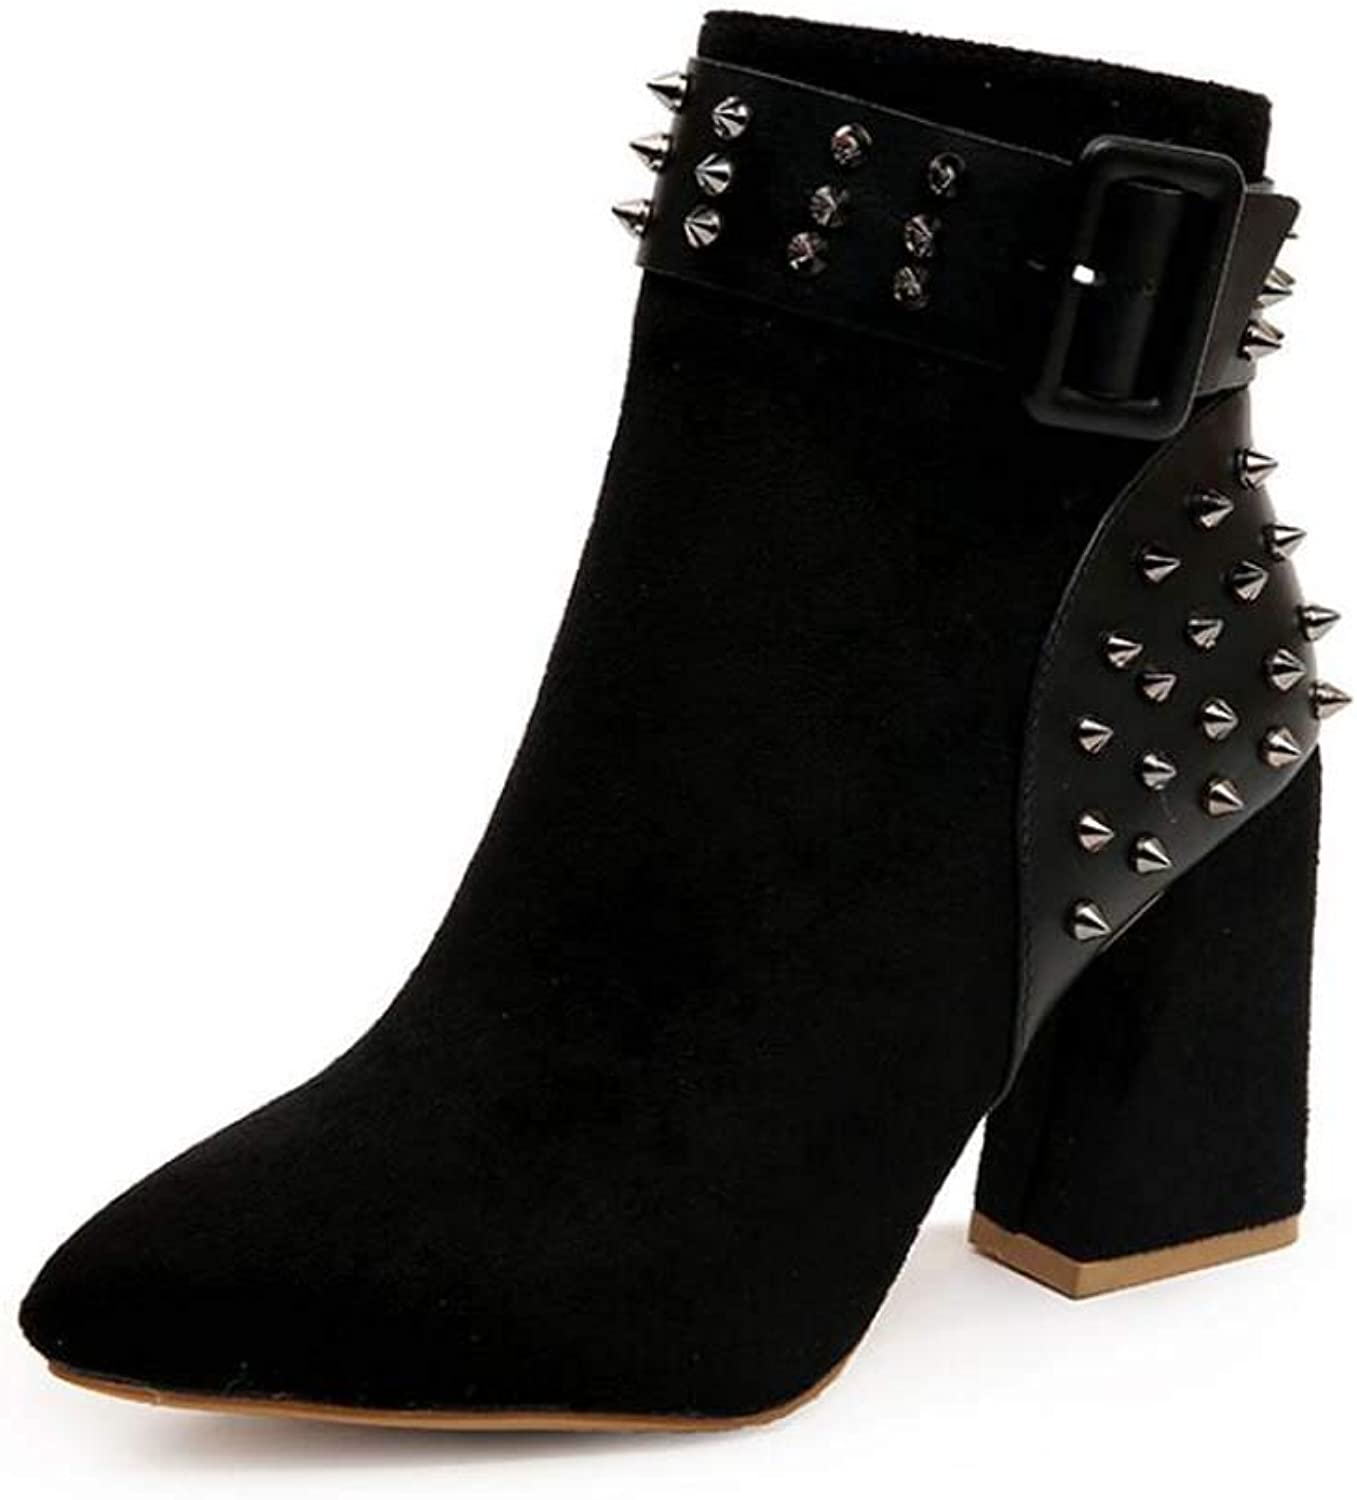 8.5Cm Chunkly Heel Rivets Ankle Bootie Party Dress Boots Women Pointed Toe Belt Buckle Martin Boot OL Court shoes EU Size 34-39